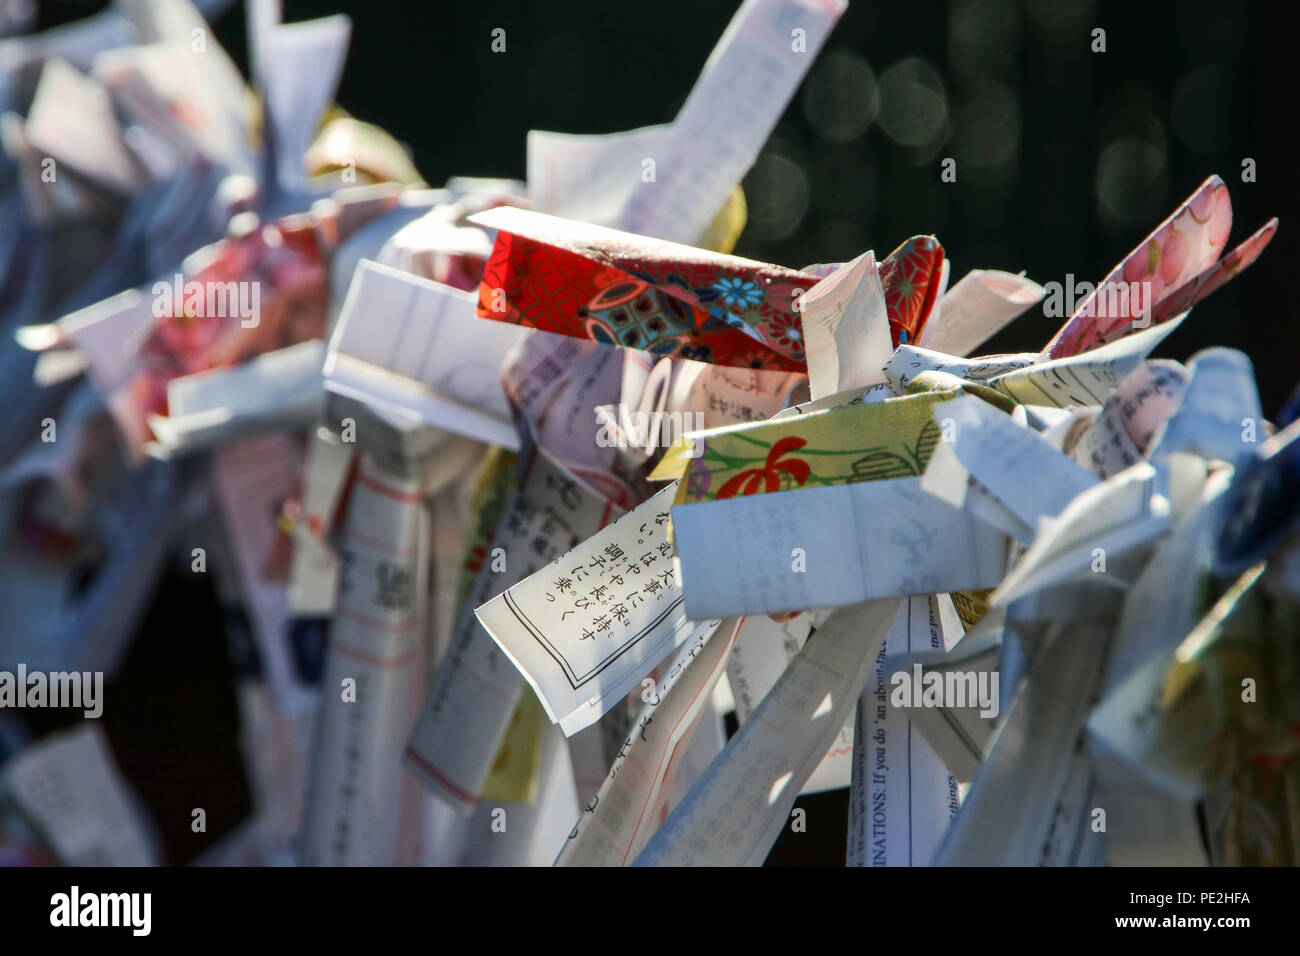 Omikuji (fortune-telling paper strip) tied to a rope at a Japanese temple in Nikko, Japan. - Stock Image